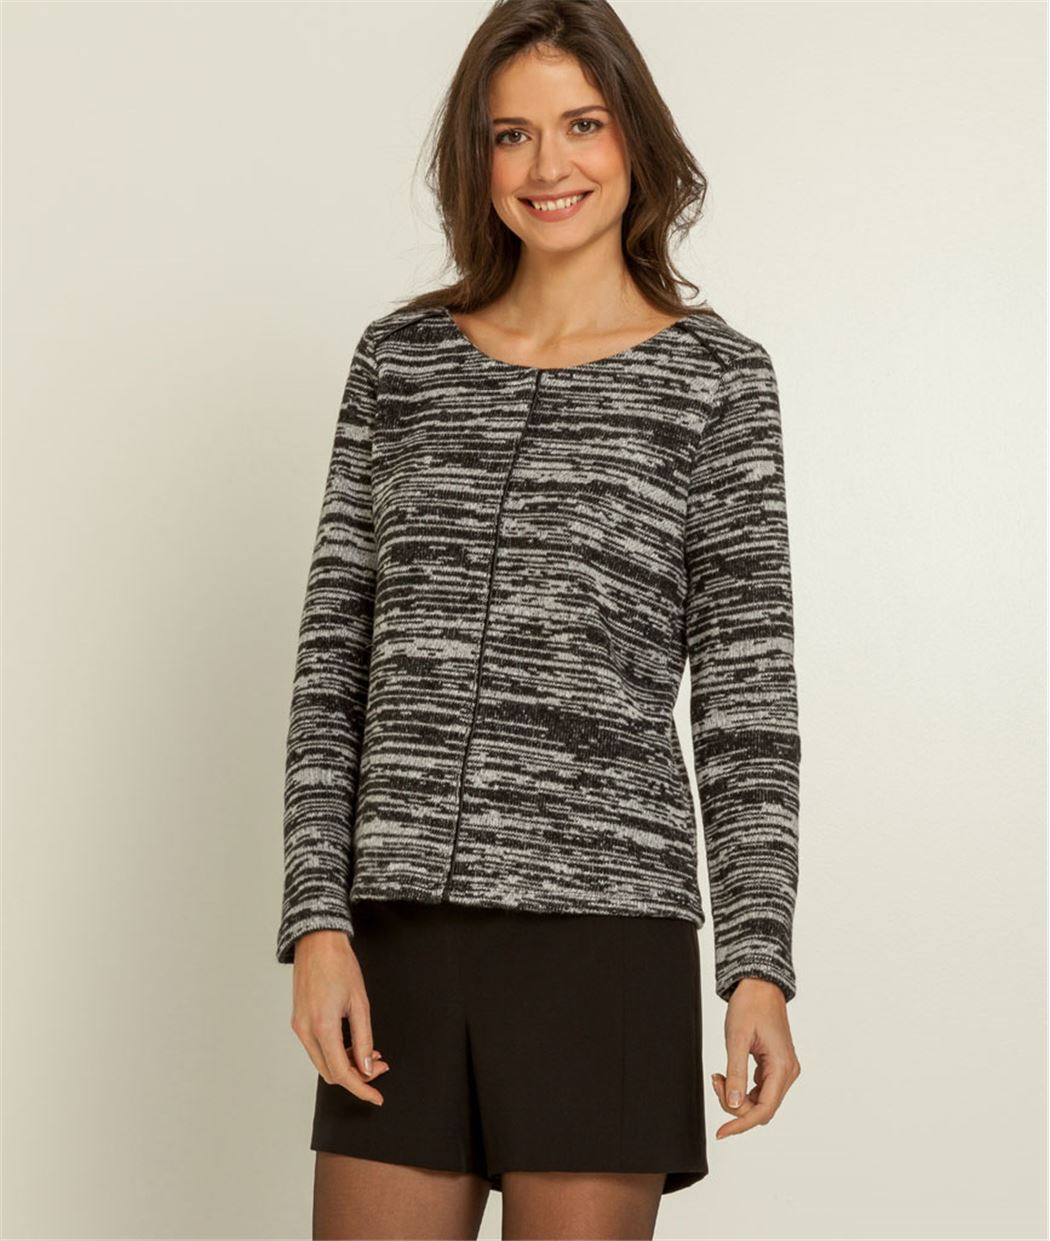 Sweat femme maille bicolore GRIS